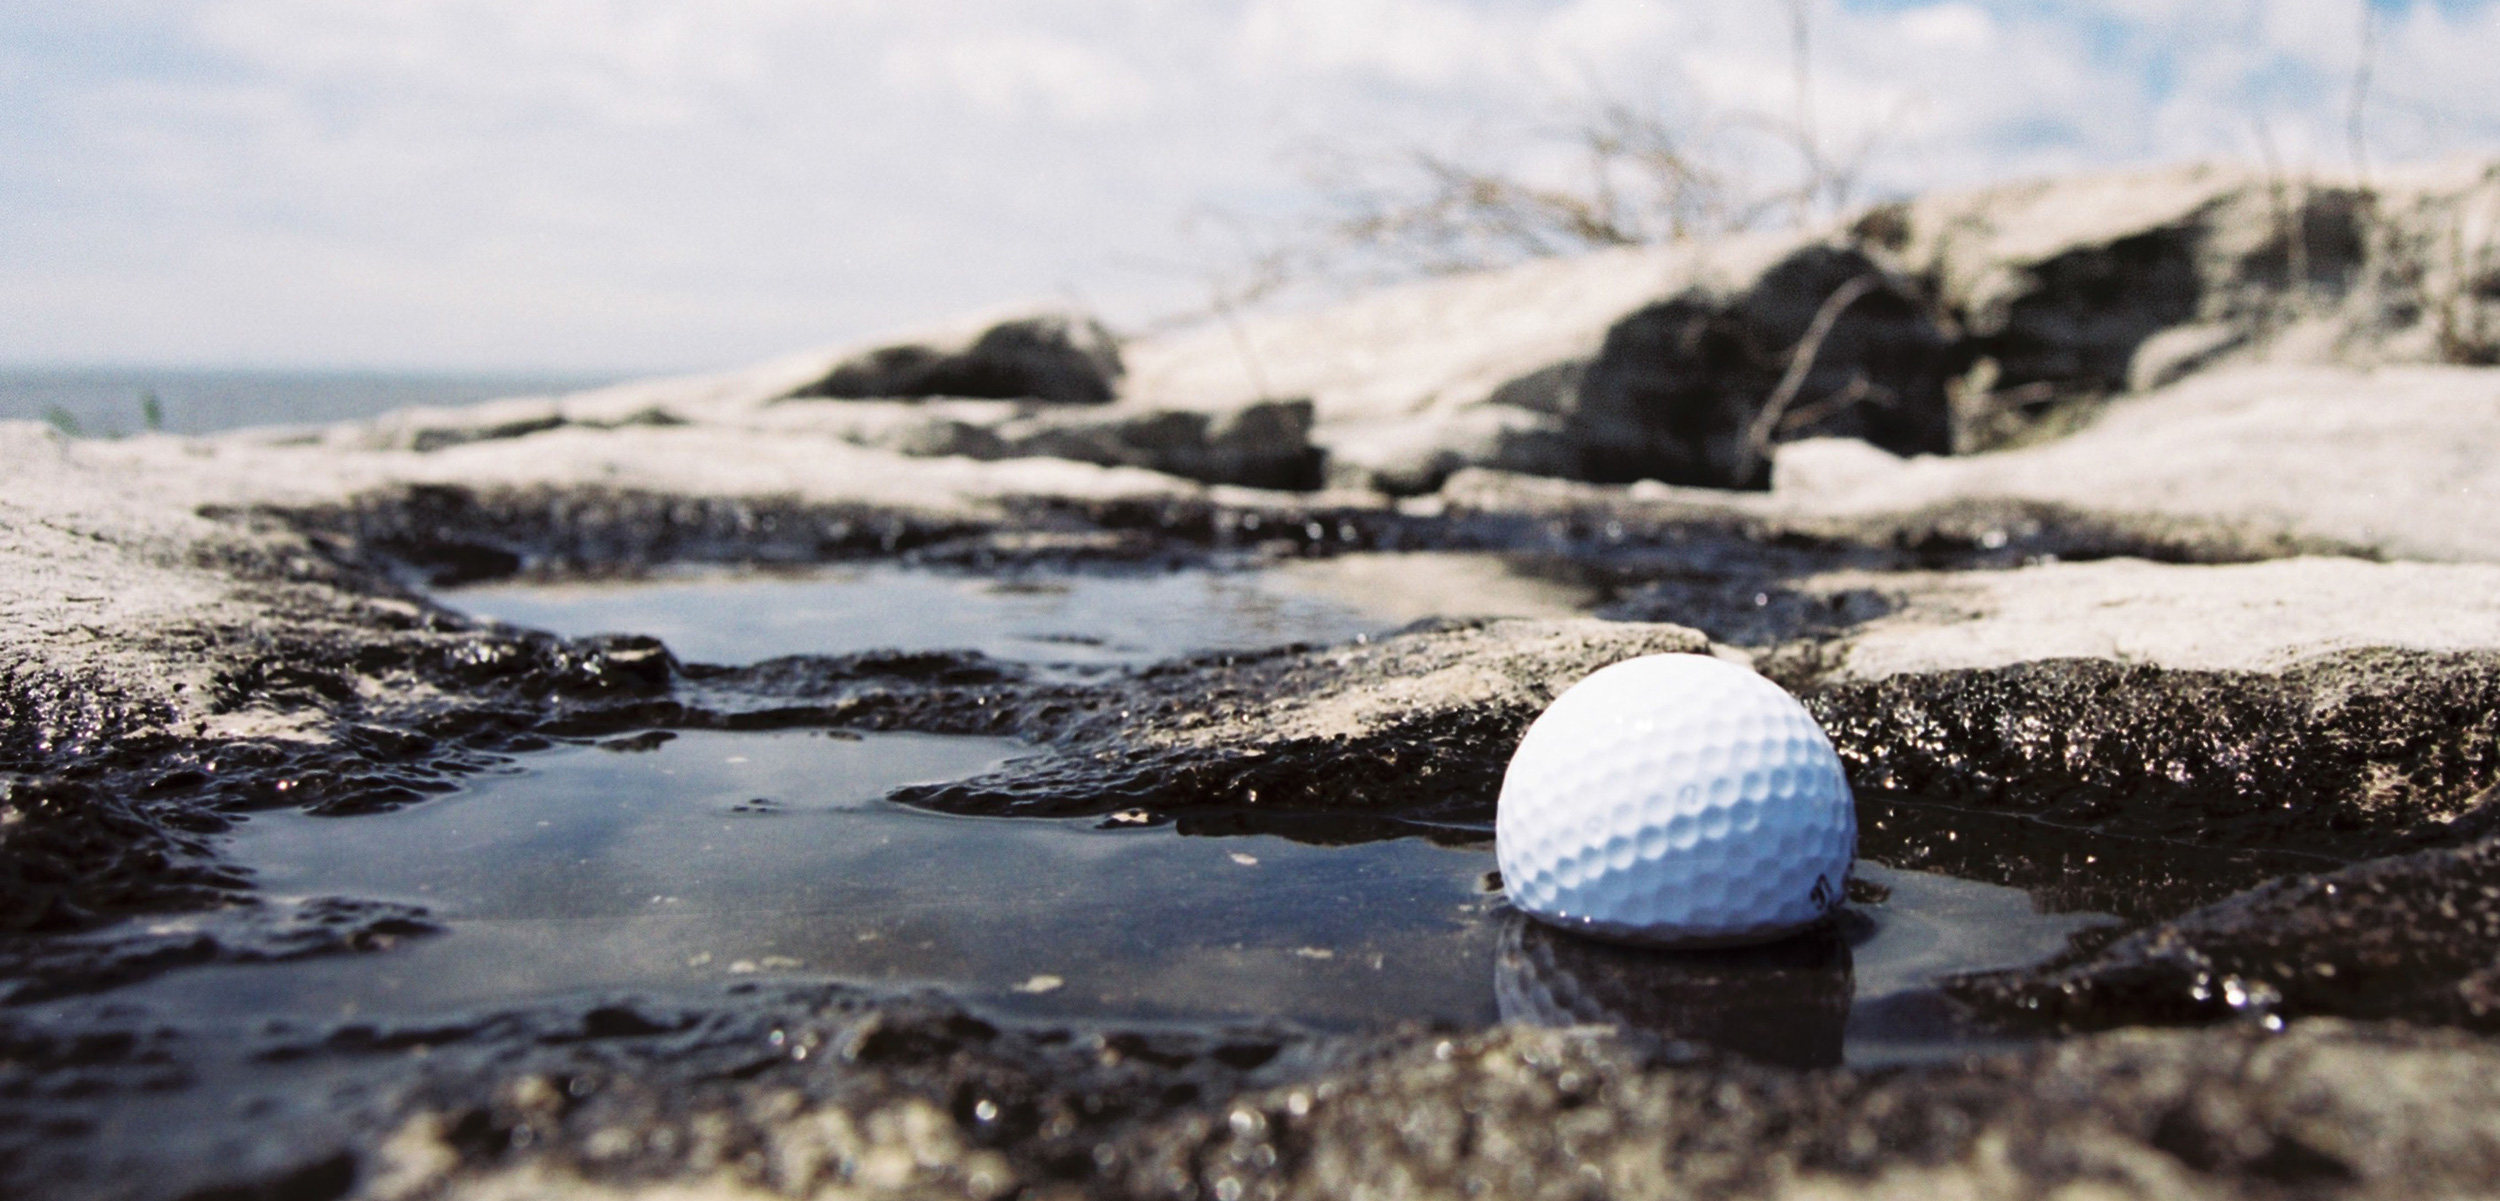 golf ball in water by the ocaen